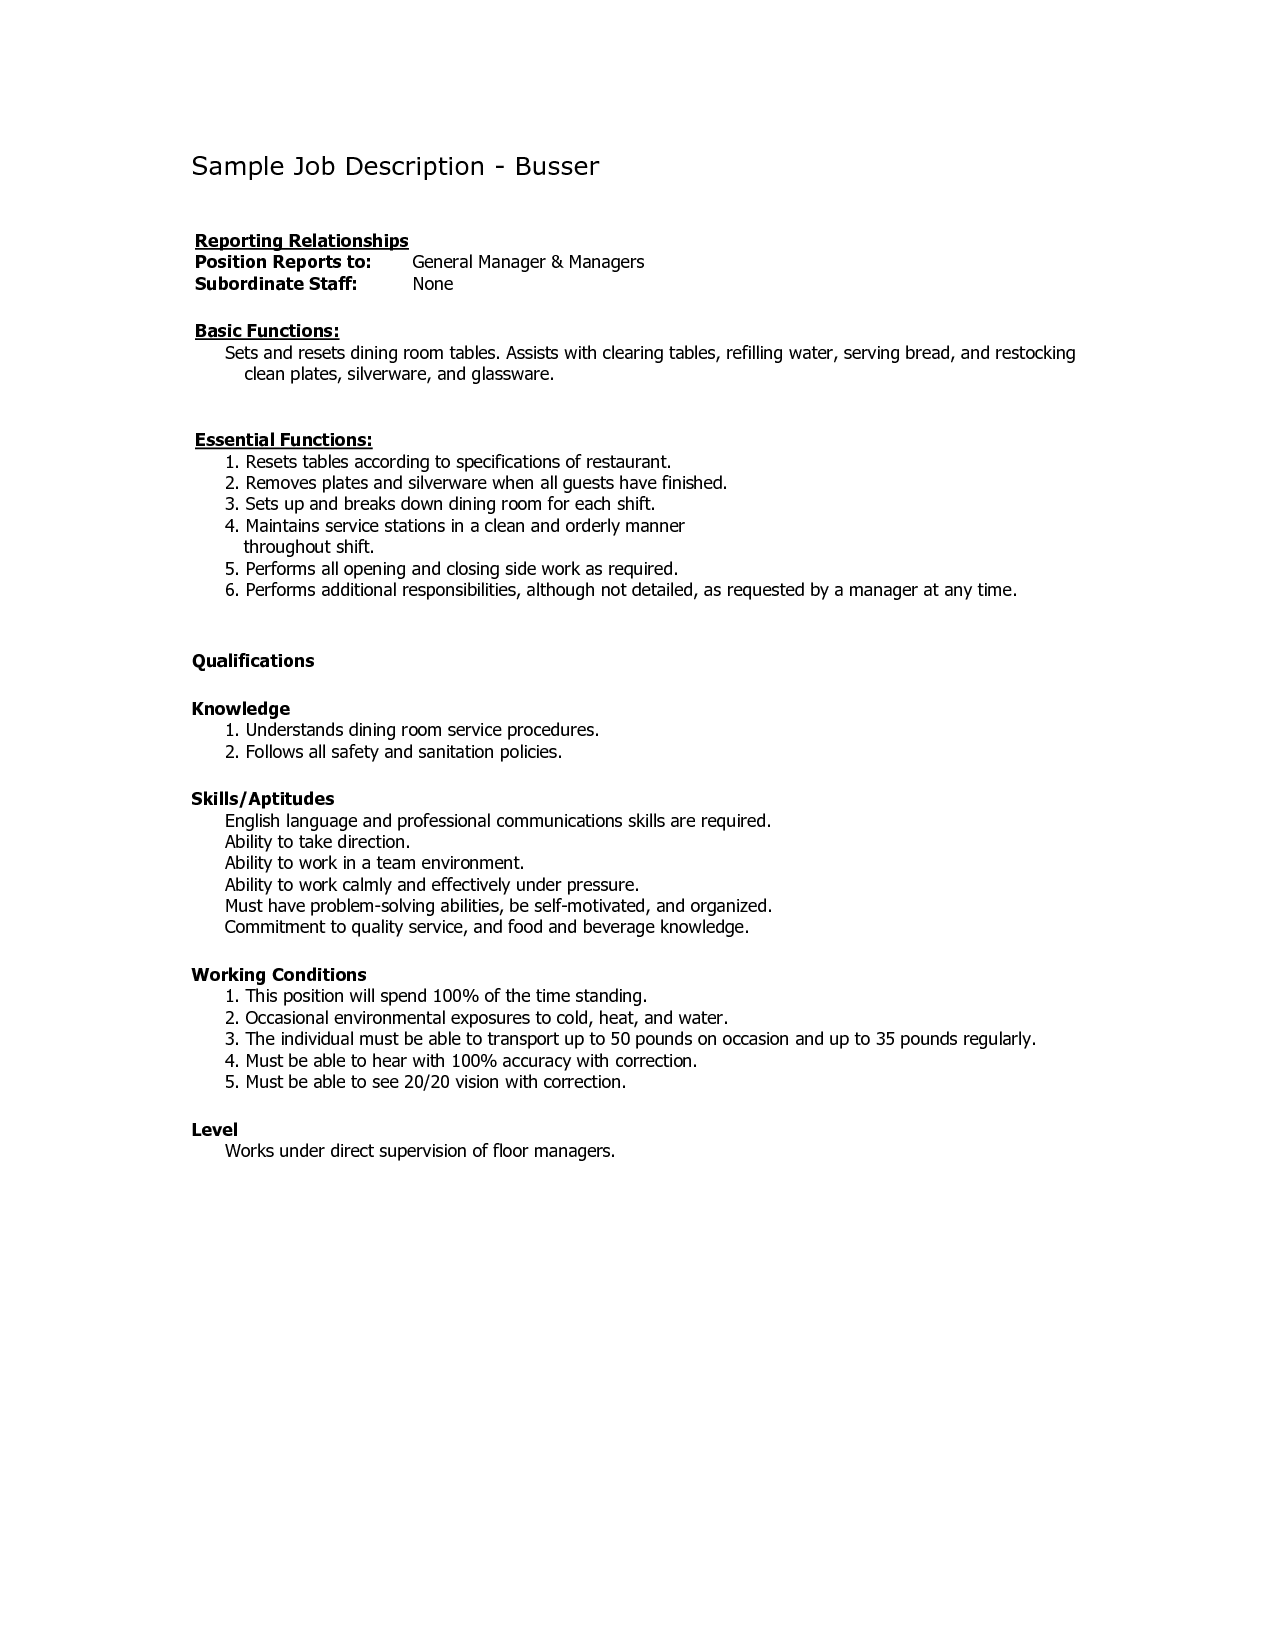 sample resume for part time job in restaurant resume examples and tips job search hourly job